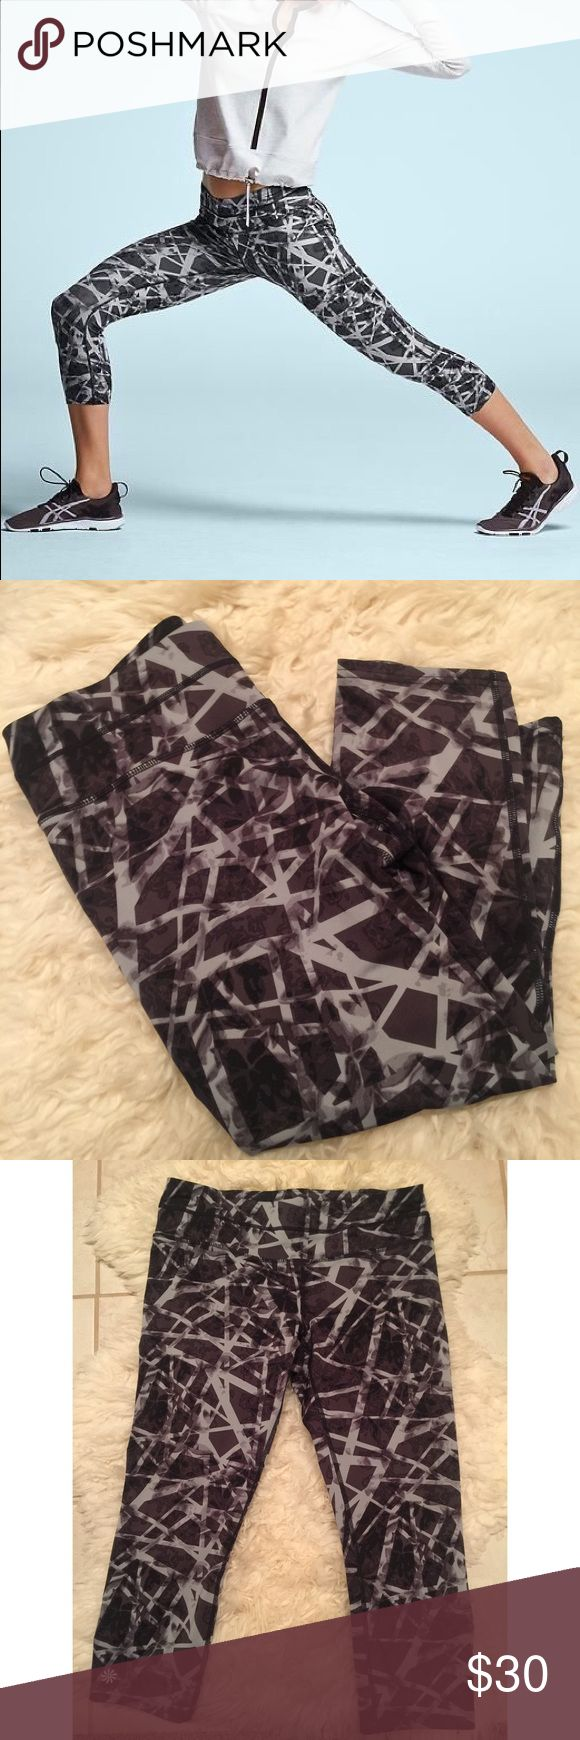 "Athleta Floral Geo Sonar Capri Excellent preworn condition. No rips, no stains, no tears. Perfect condition! Size medium. 19.5"" inseam, 16"" across Capri unstretched. Body: 87% polyester 13% Lycra. Gusset: 100% Polyester Coolmax. Comes with pocket on the back of the right side of the Capri. No trades. Athleta Pants Capris"